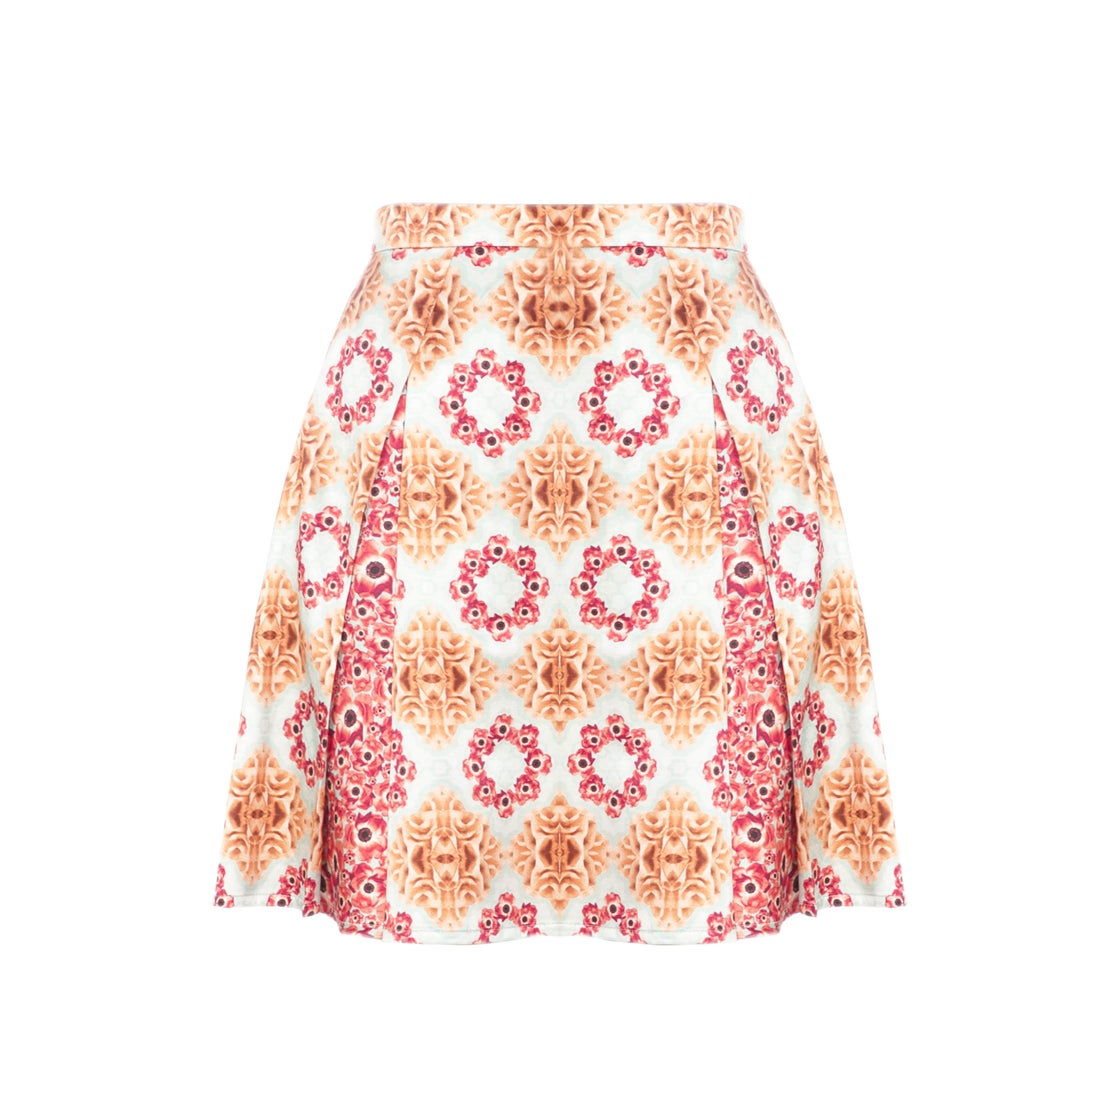 Image of GLAM SKIRT| Poppy